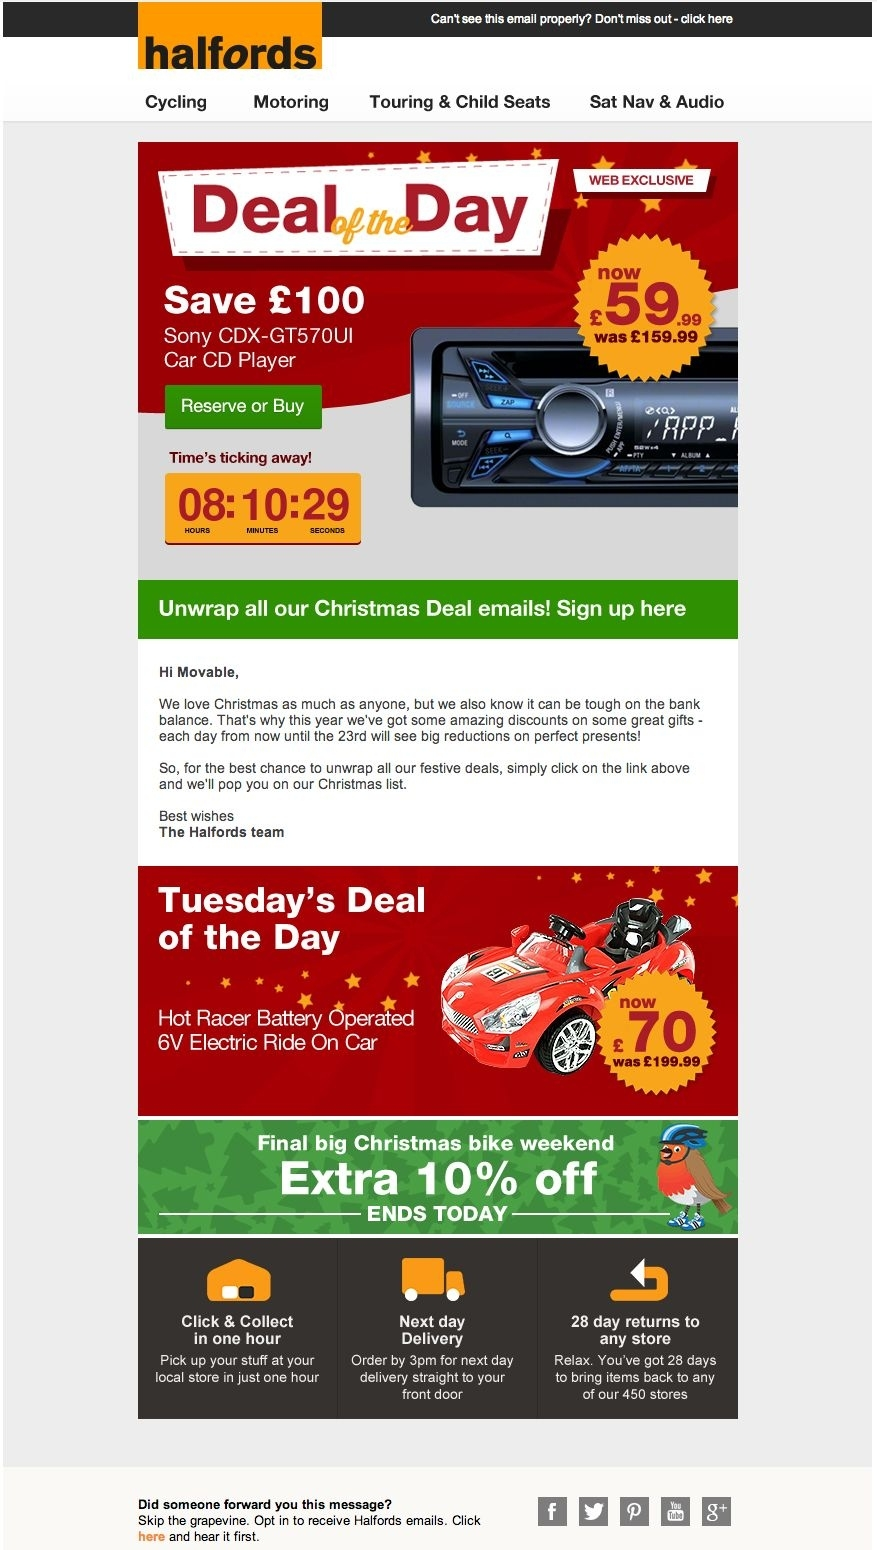 Halfords Used A Live Animated Countdown Clock In This Email Countdown Clock Without Weekends And Holidays